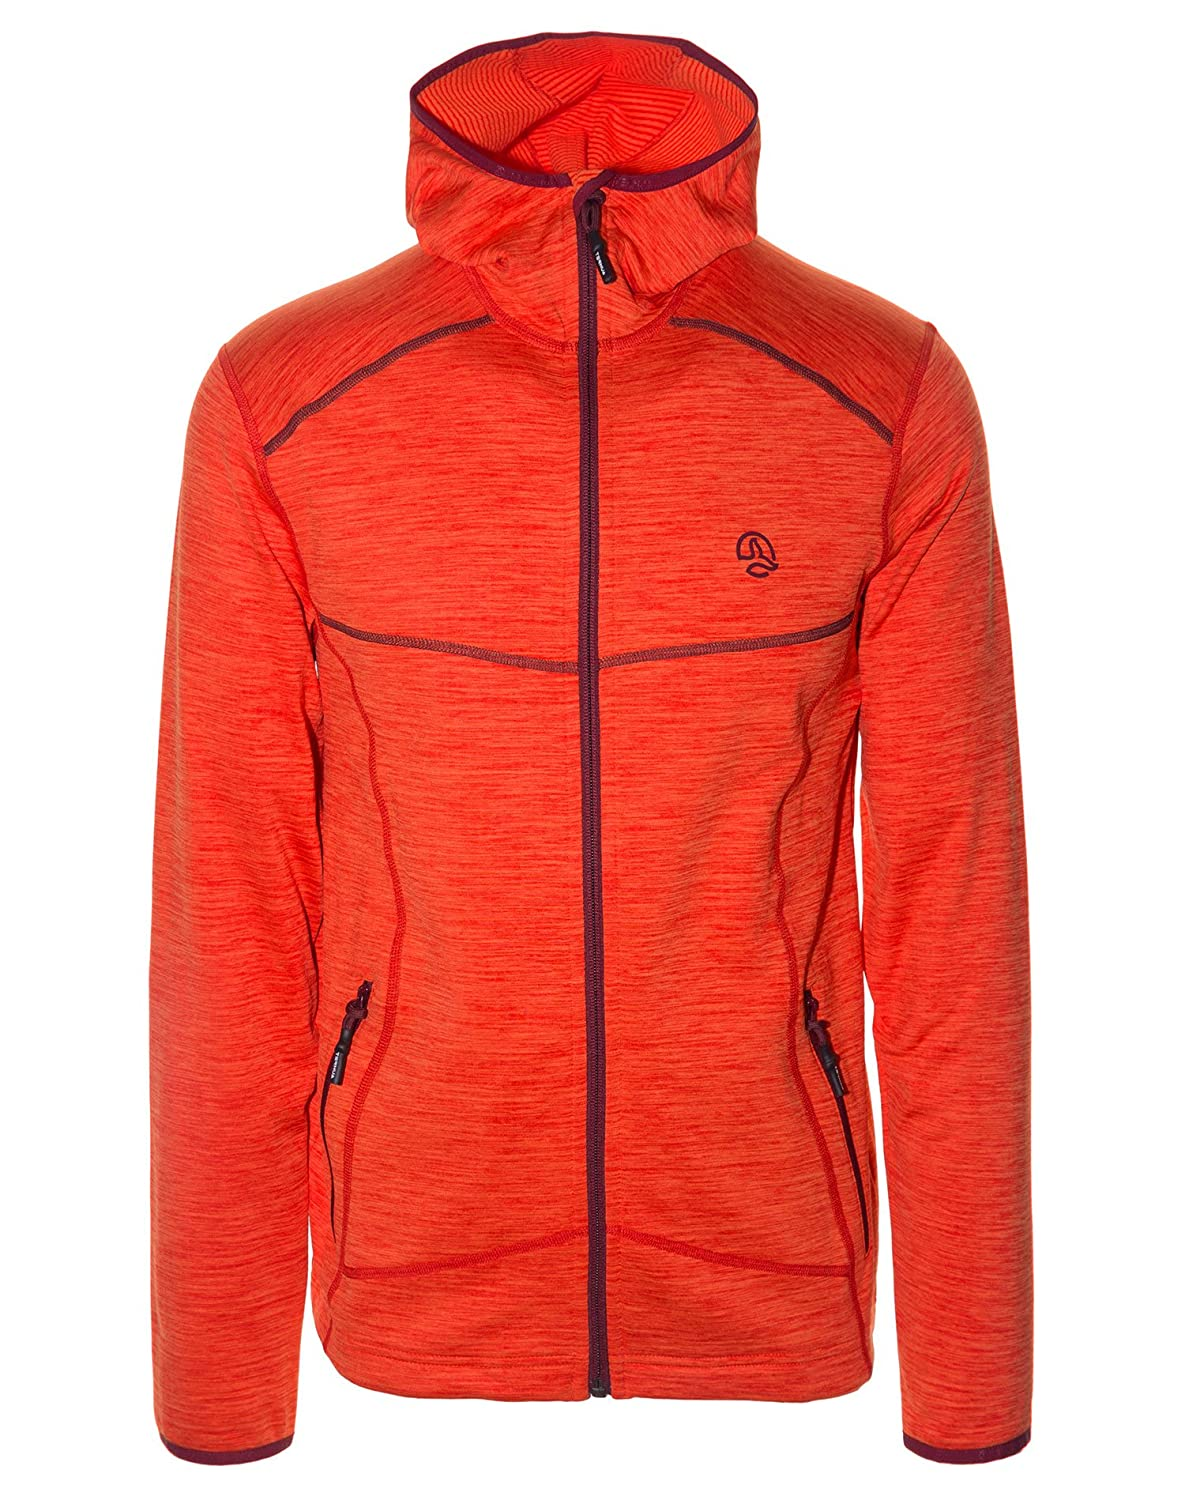 Orange, rouge XL Ternua ® gotam JKT M Veste, Homme